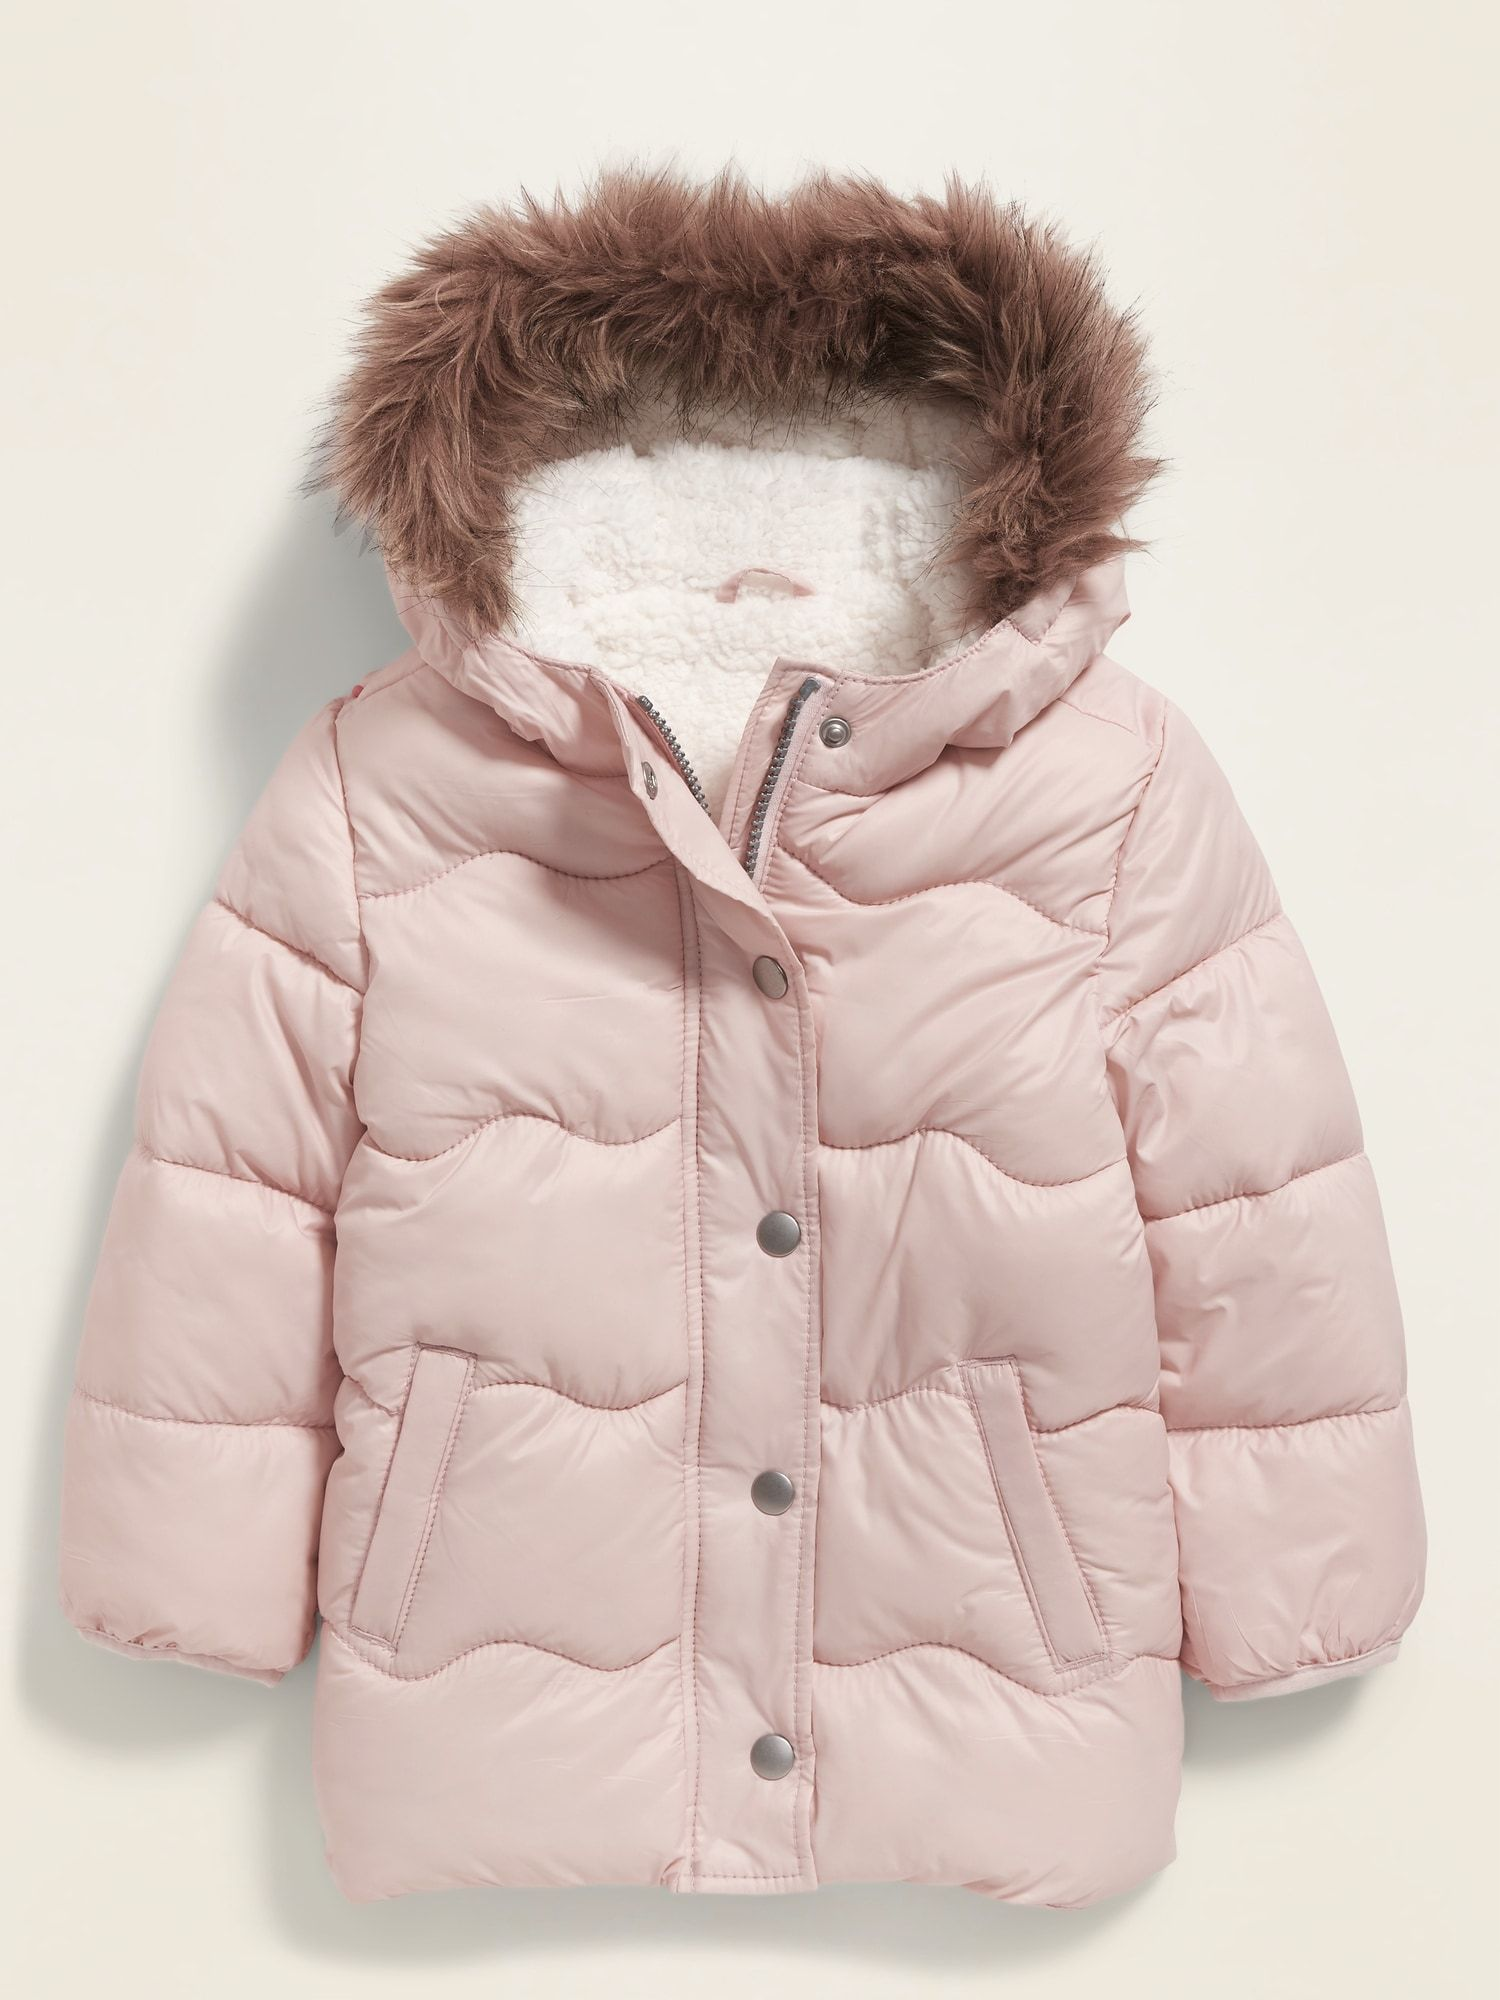 Old Navy Unisex Faux Fur Trim Hooded Frost Free Puffer Jacket For Toddler Soft Shell Size 2 Winter Baby Clothes Toddler Winter Jackets Toddler Girl Jackets [ 2000 x 1500 Pixel ]